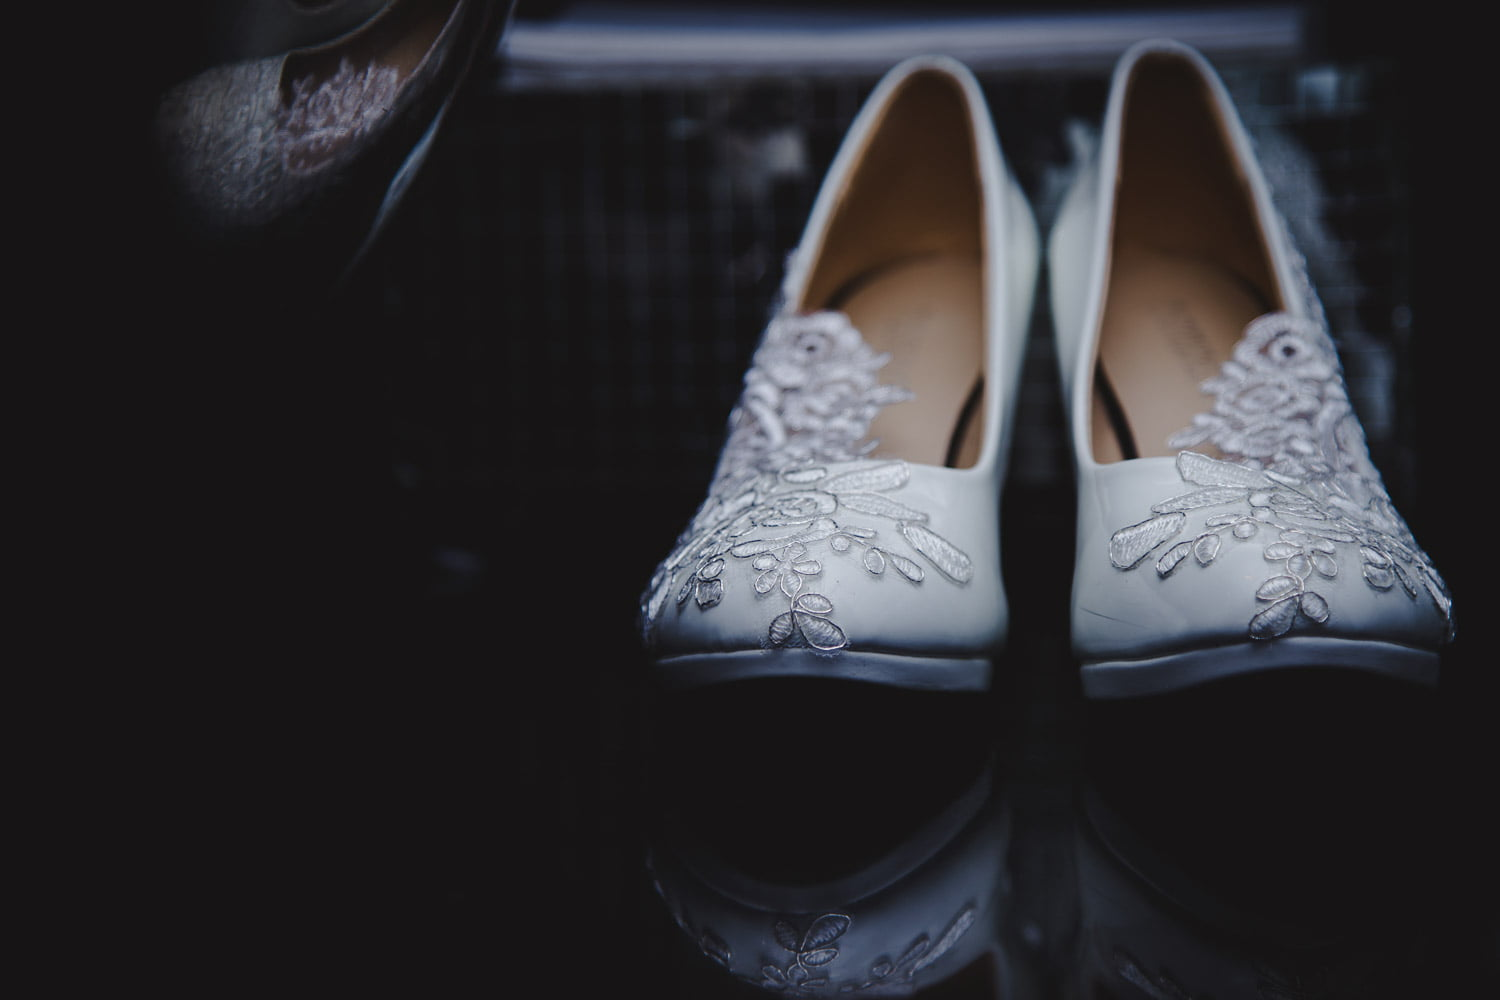 lace details on shoes for a Minneapolis wedding in winter